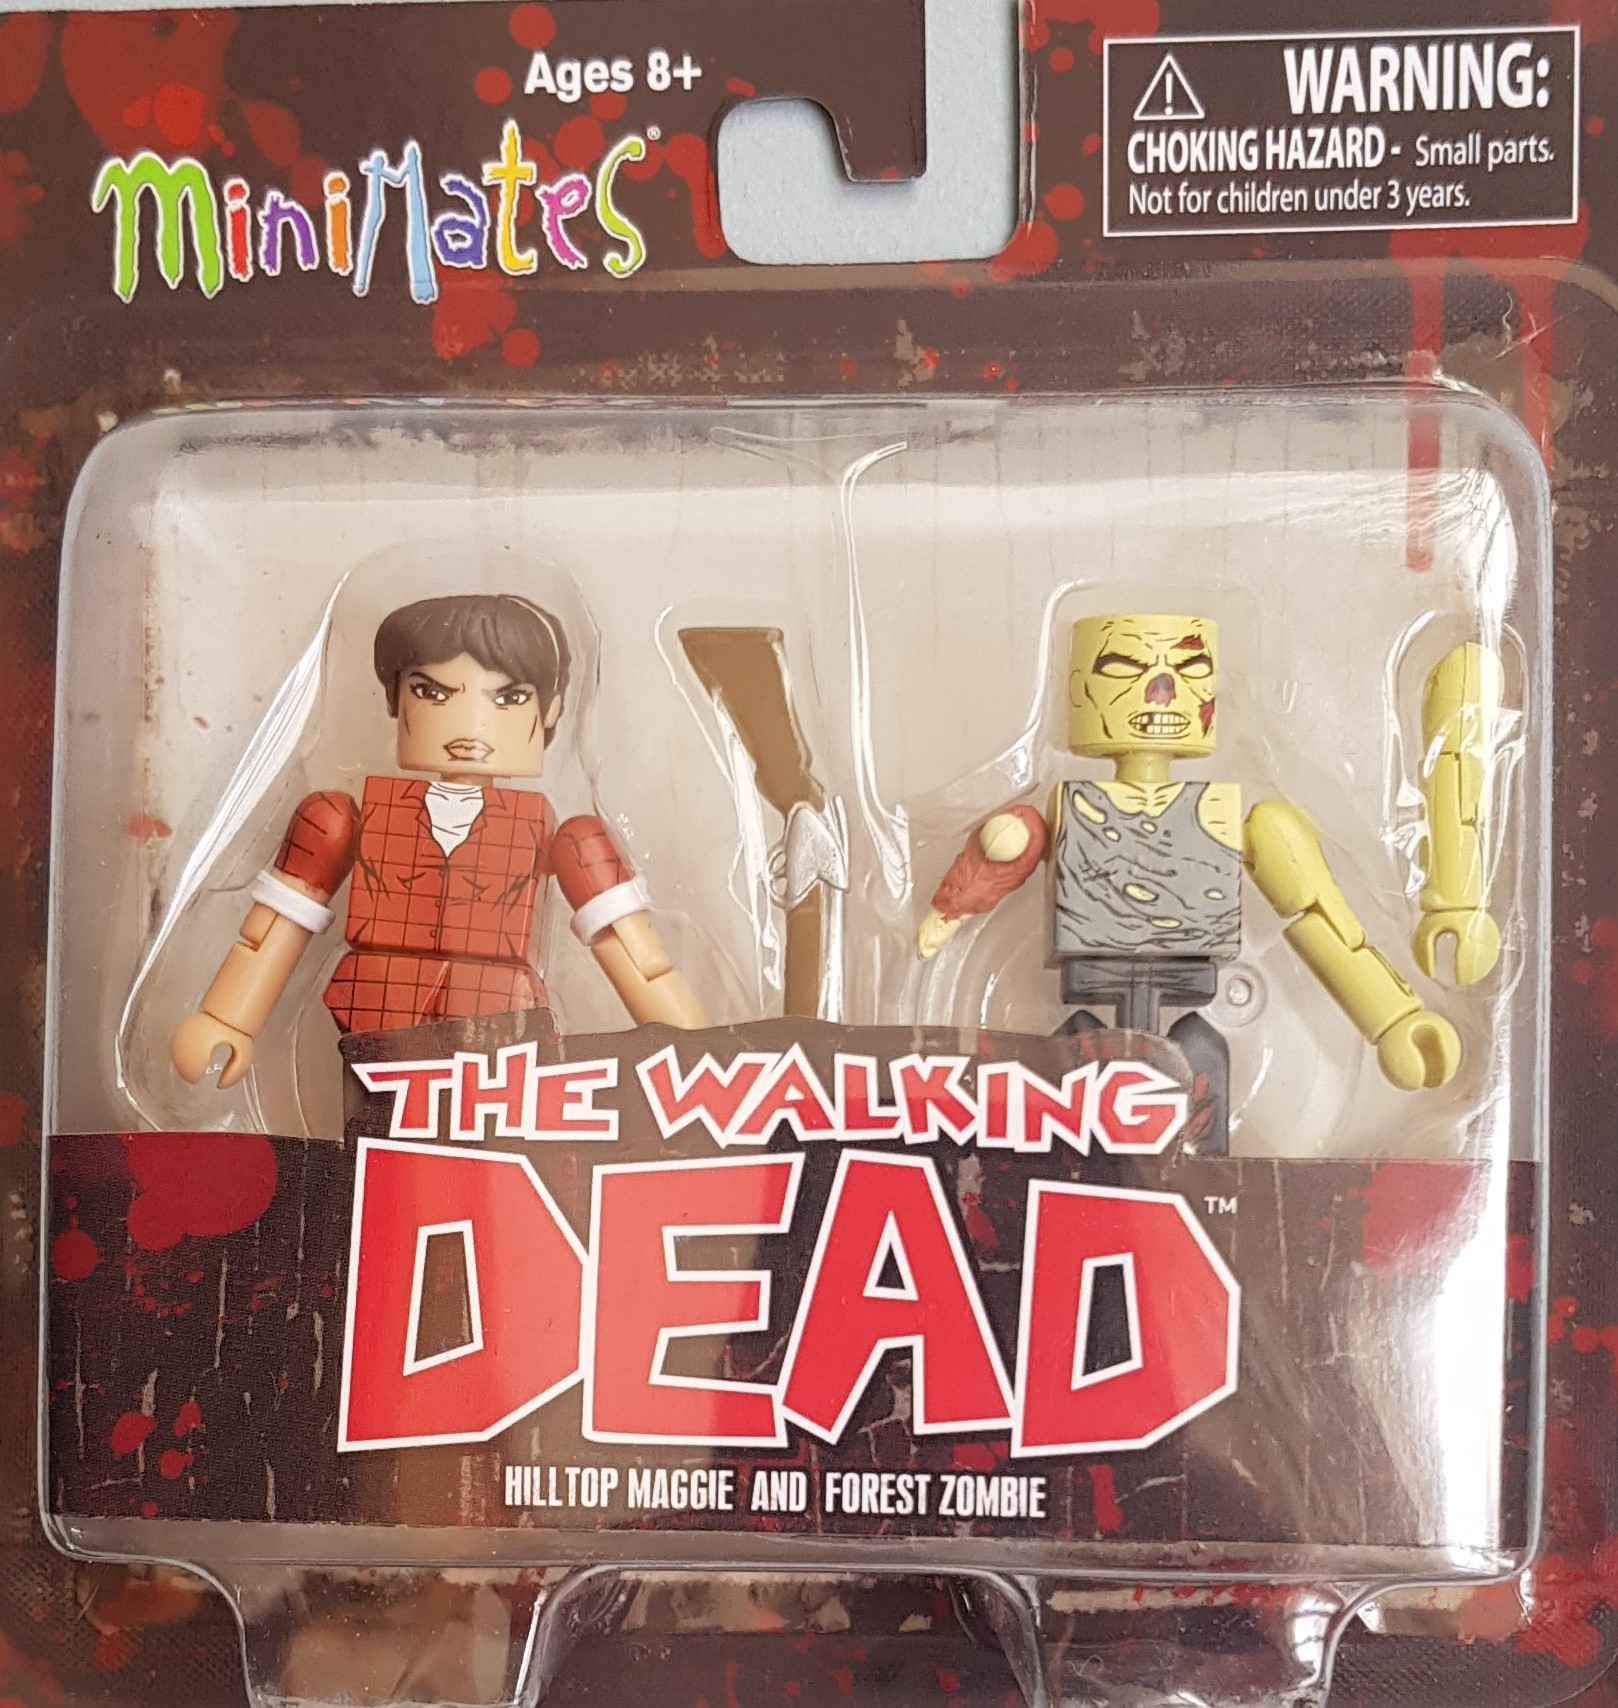 WALKING DEAD MINIMATES SERIES 8 ASST HILLTOP MAGGIE/FOREST ZOMBIE (CAIXA DAMAGED)